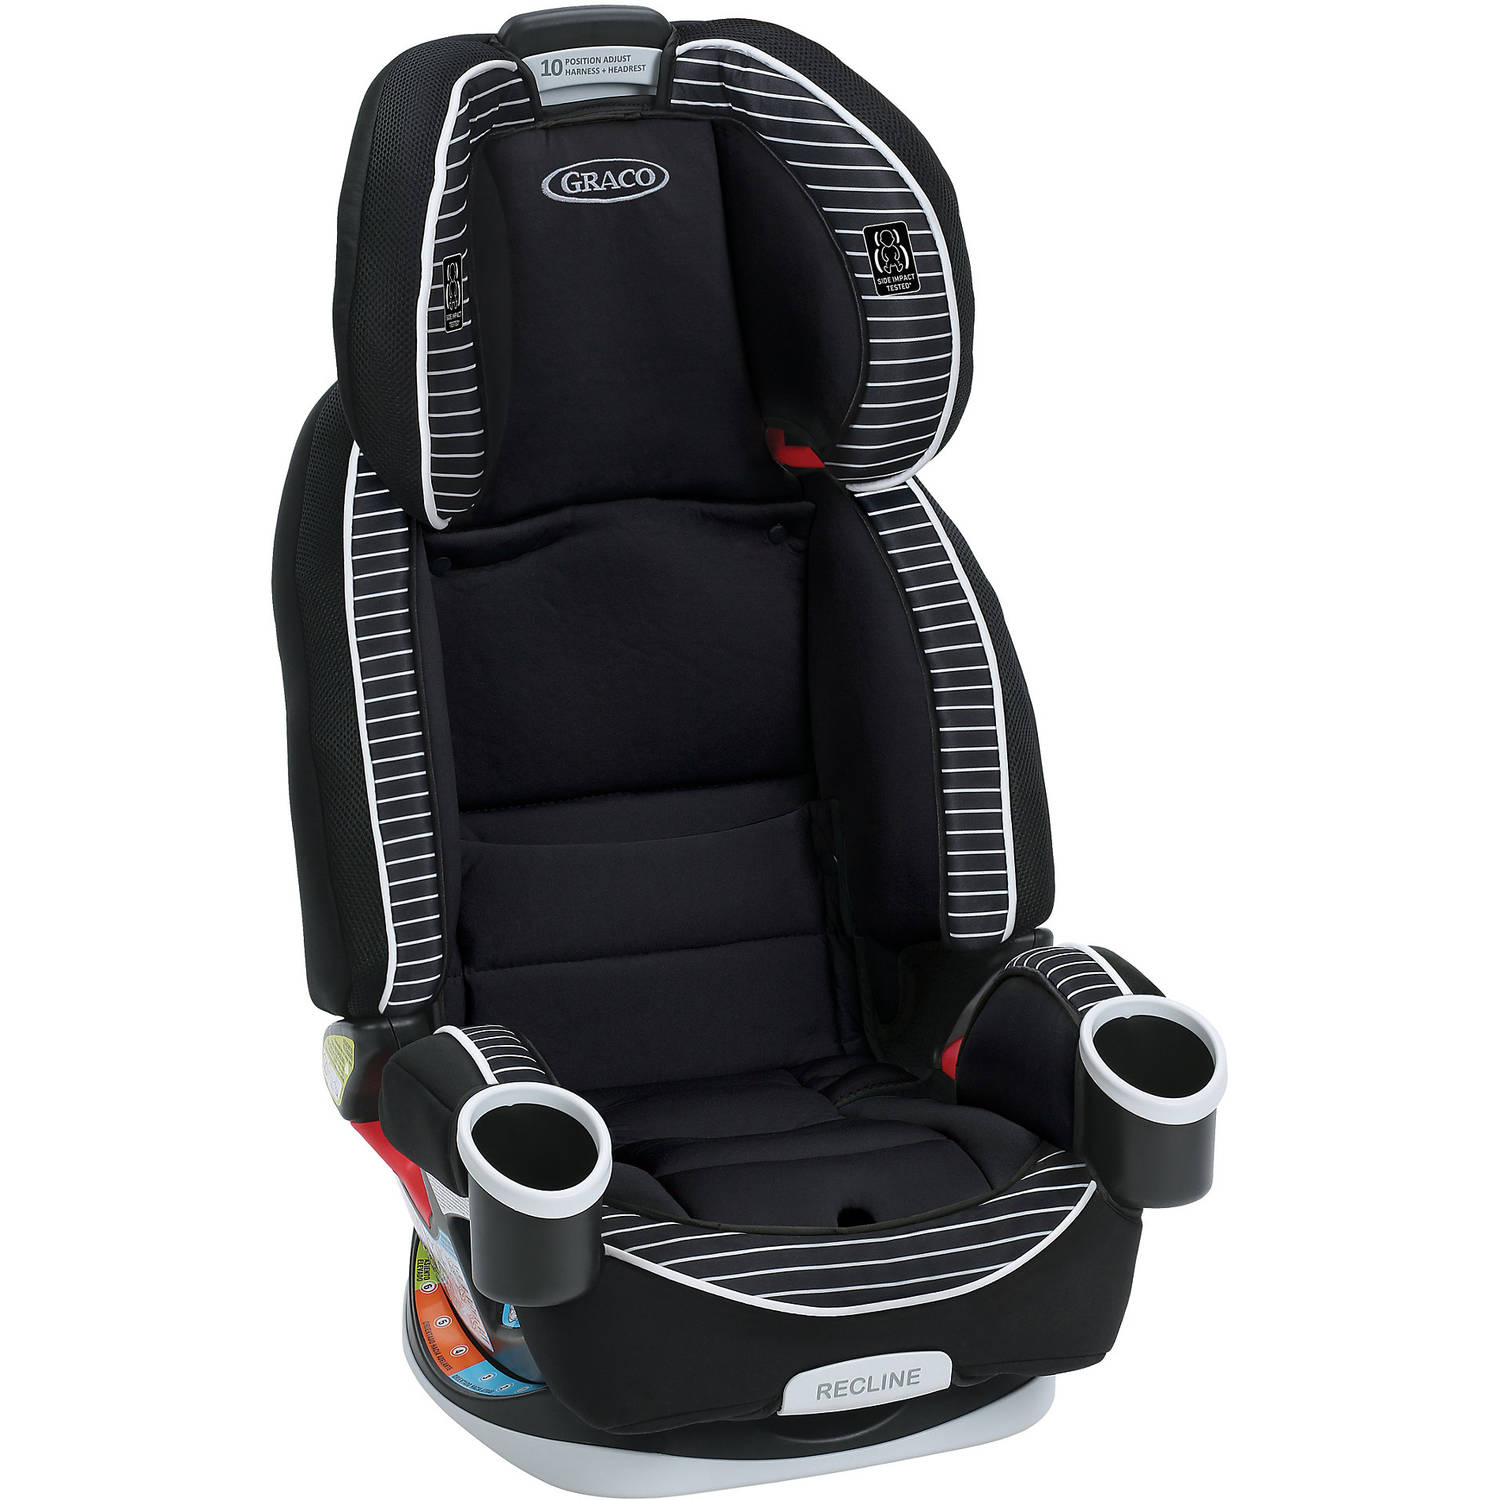 graco 4ever all in 1 convertible car seat choose your pattern ebay. Black Bedroom Furniture Sets. Home Design Ideas